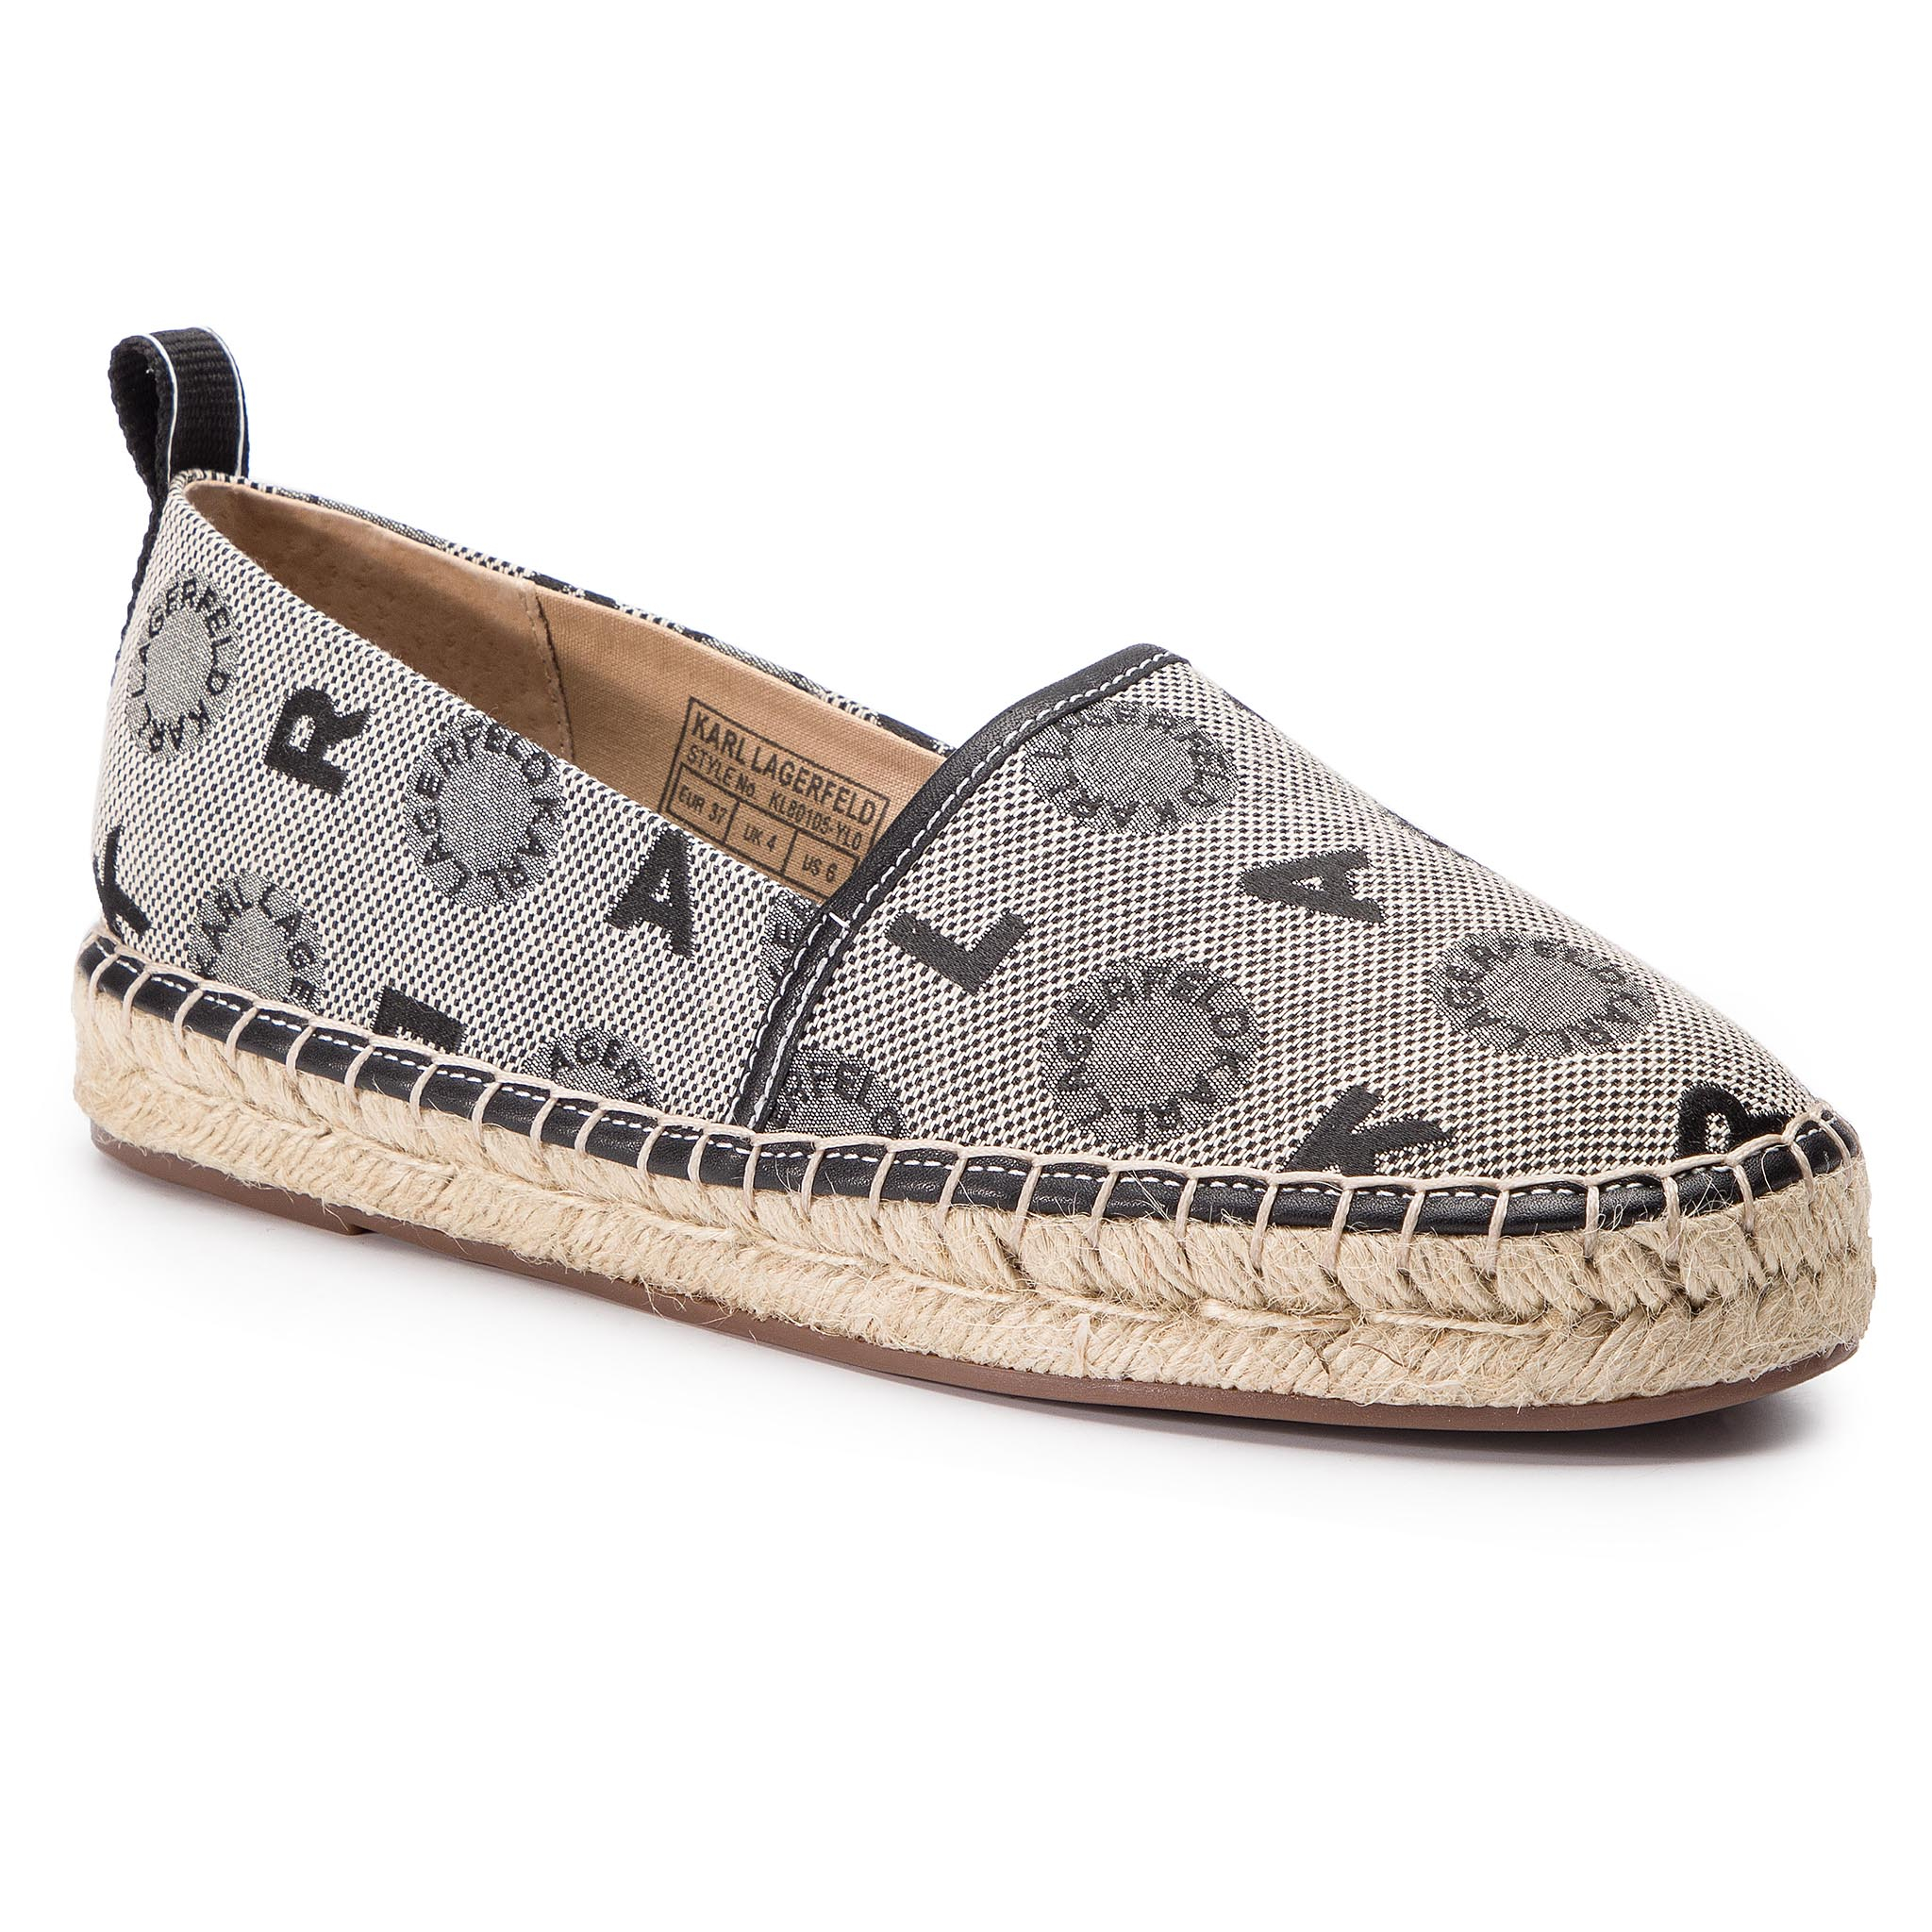 Espadrile KARL LAGERFELD - KL80105 Light Grey Waeave W/Black